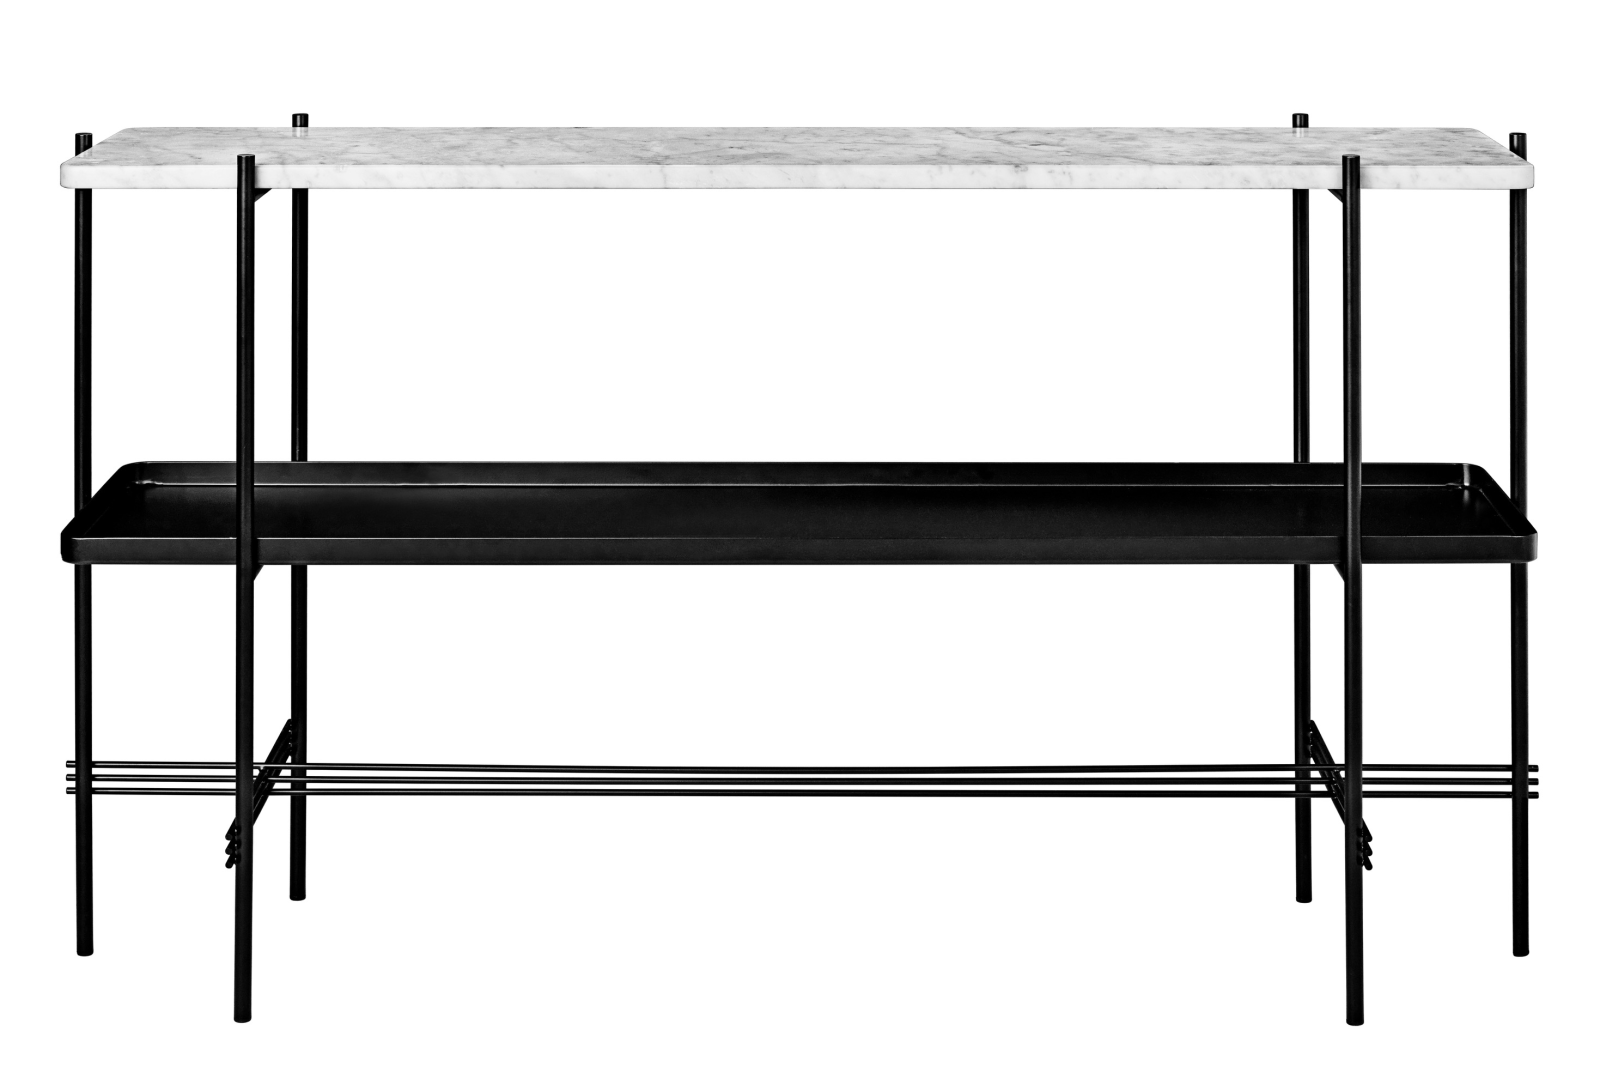 TS Rectangular Console Table with One Marble Plate and One Metal Tray Gubi Marble Bianco Carrara, Gu